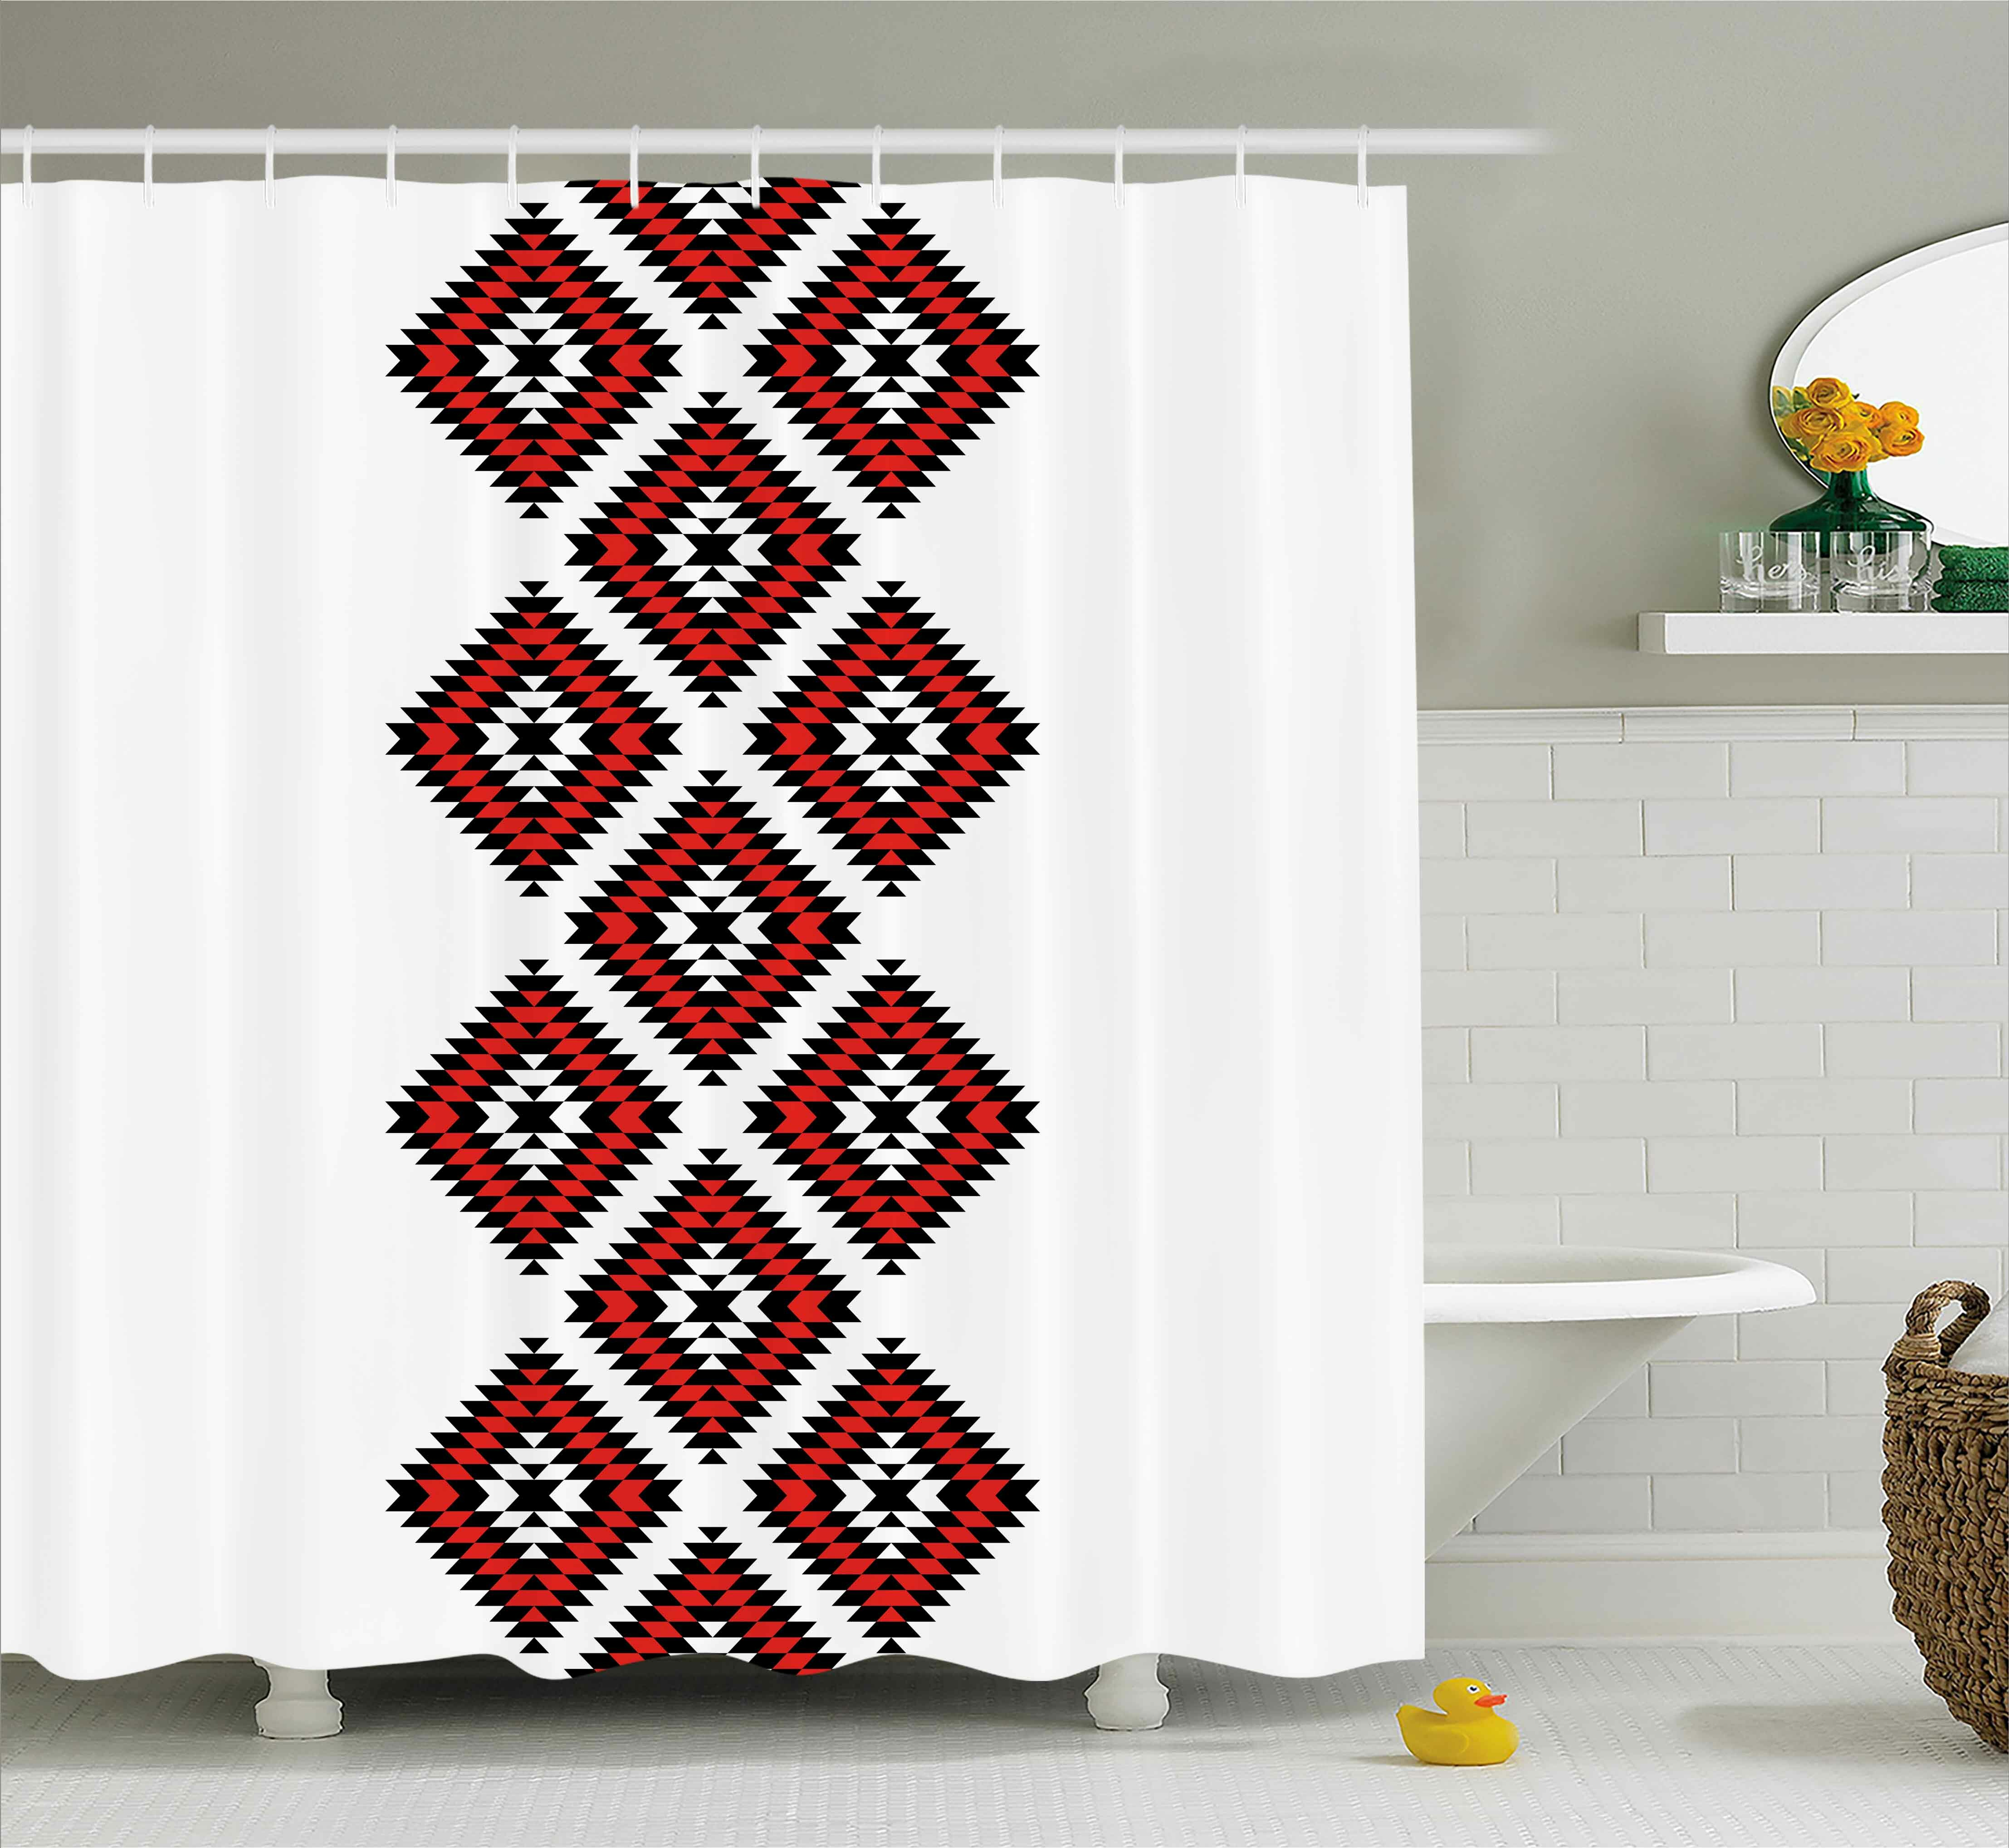 0ff4441664 Susie Tribal Native American Zig Zag Aztec Ethnic Motif With Embroidery  Ornaments Image Single Shower Curtain